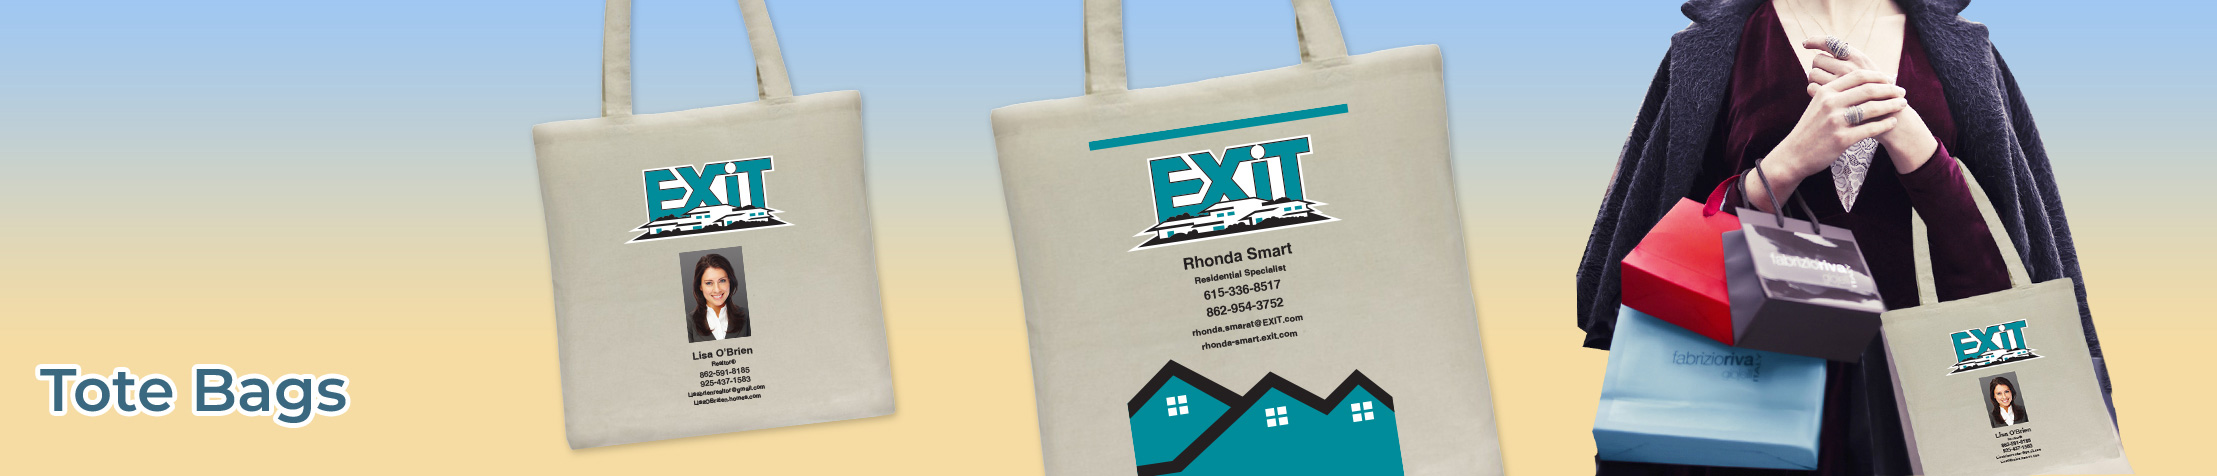 Exit Realty Real Estate Economy Can Cooler - Exit Realty approved vendor personalized realtor promotional products | BestPrintBuy.com